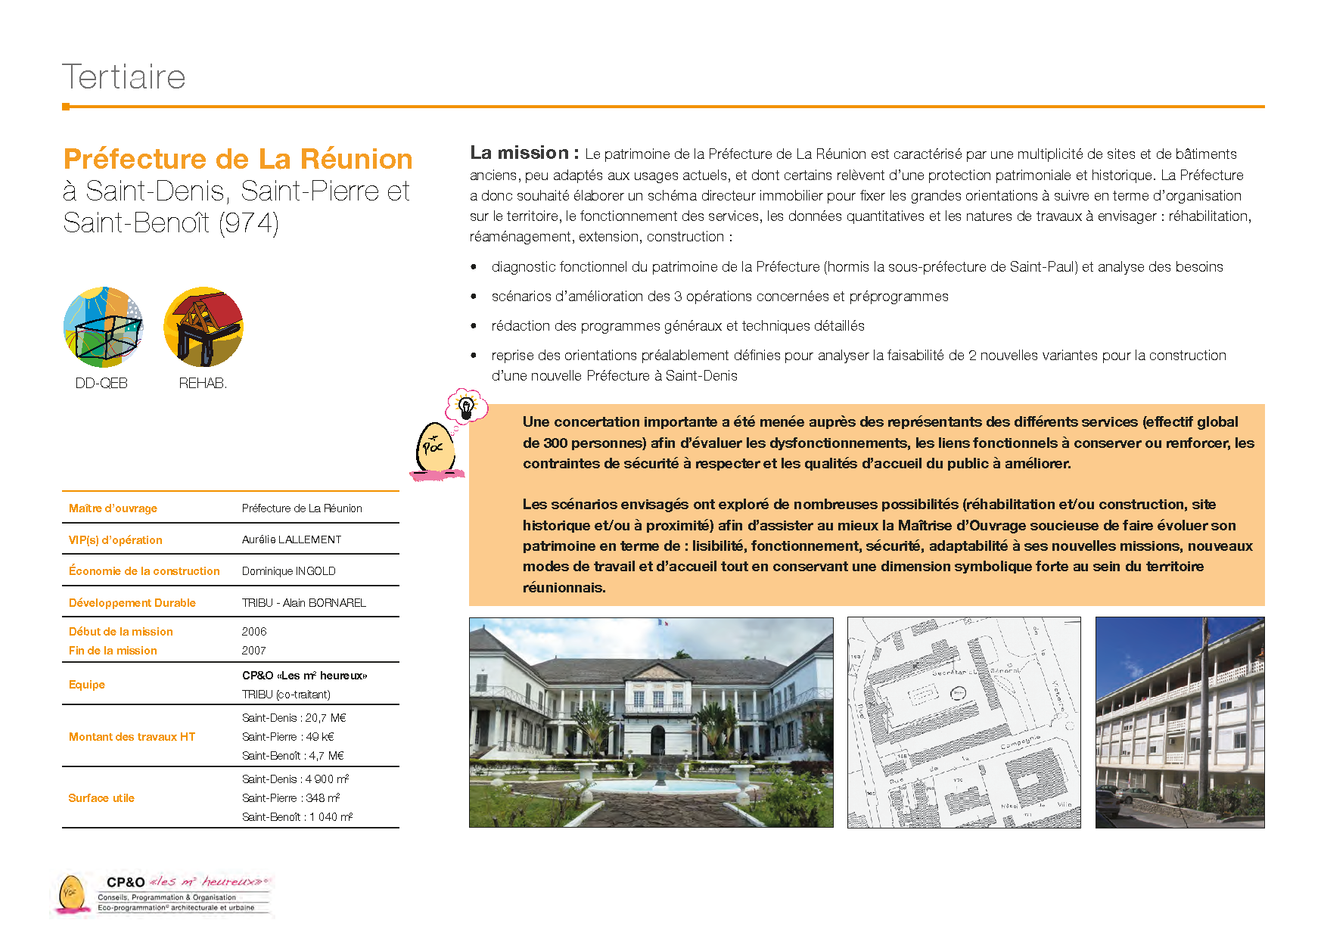 tertiaire_Page_27.png